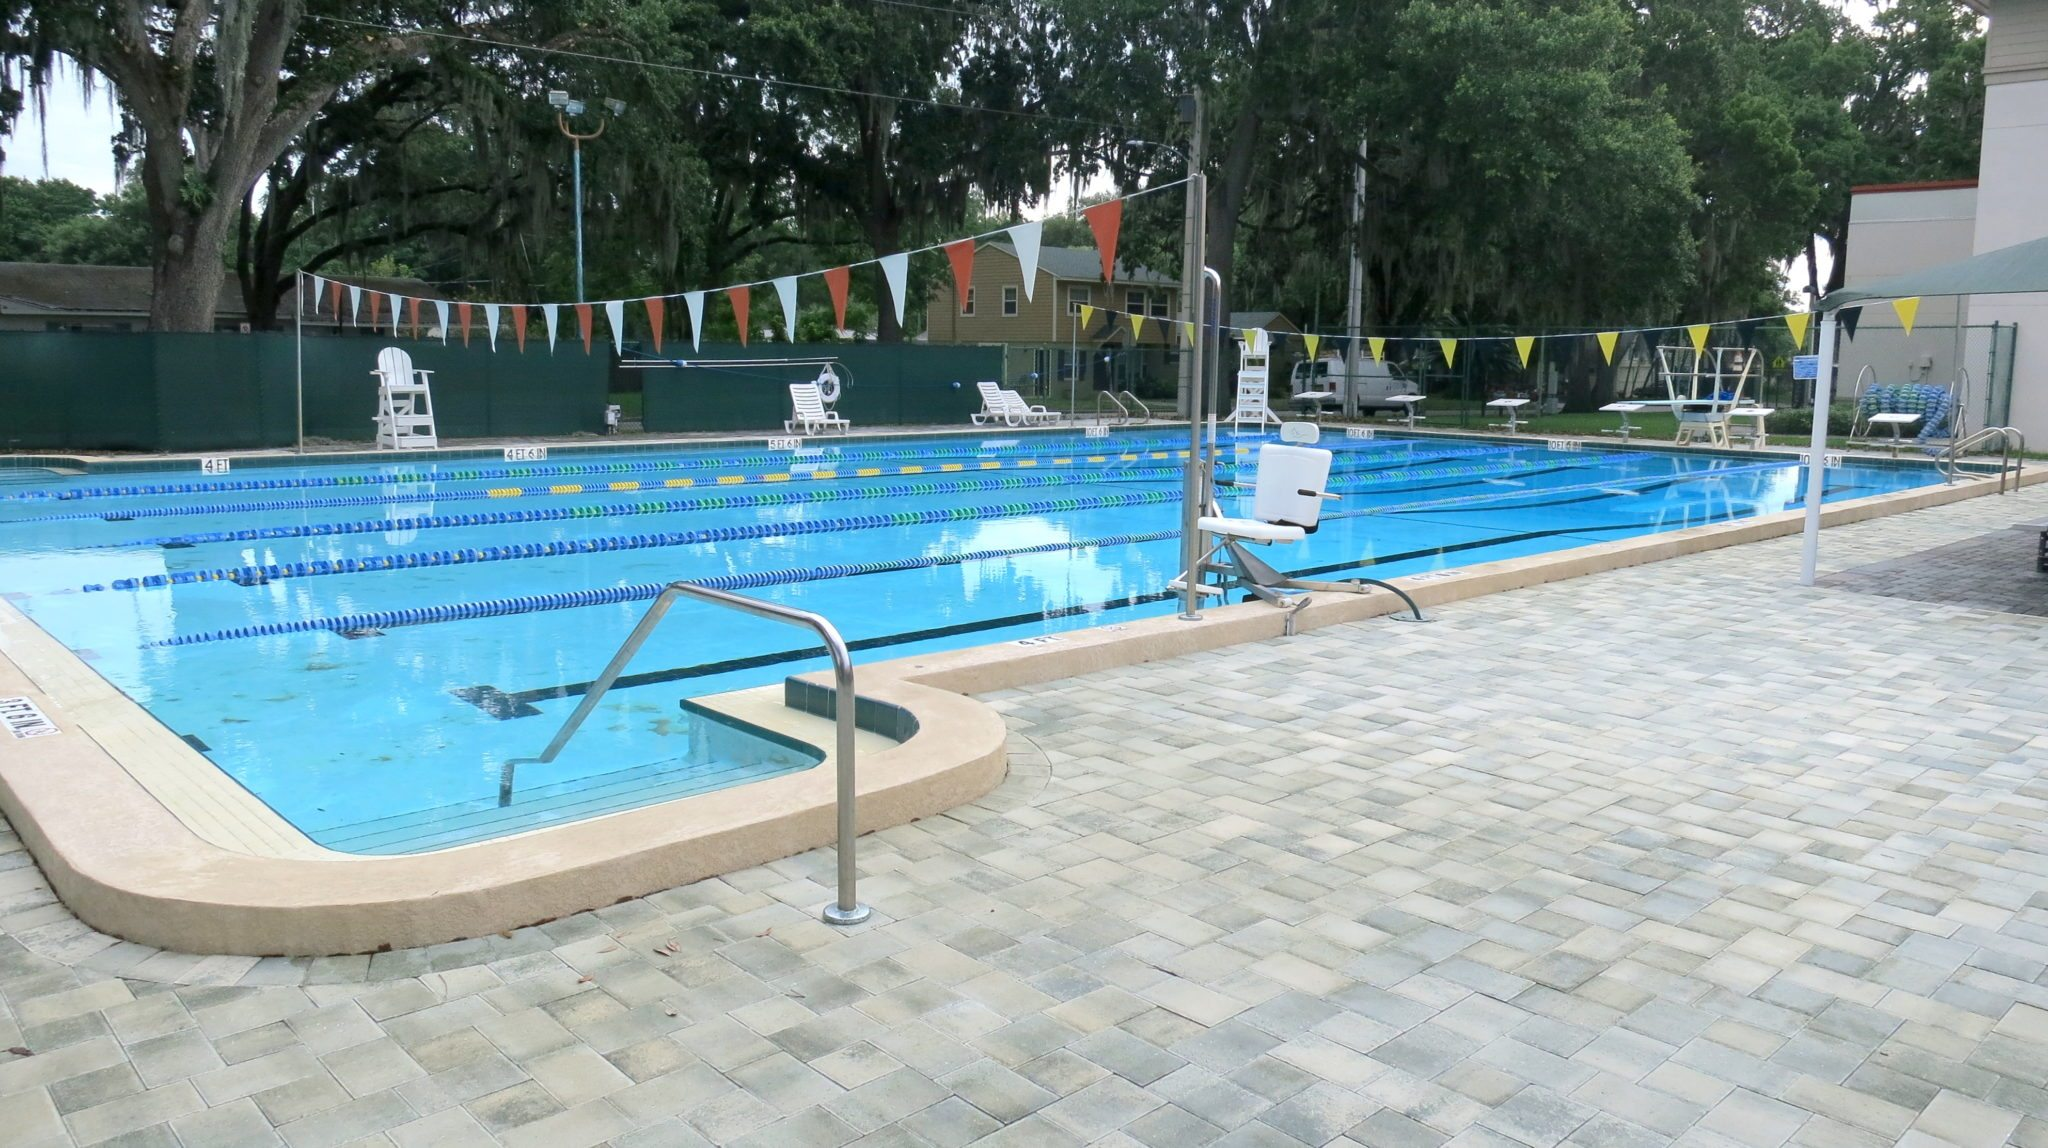 City pools offer free open swim for the summer bungalower for Opening pool for summer